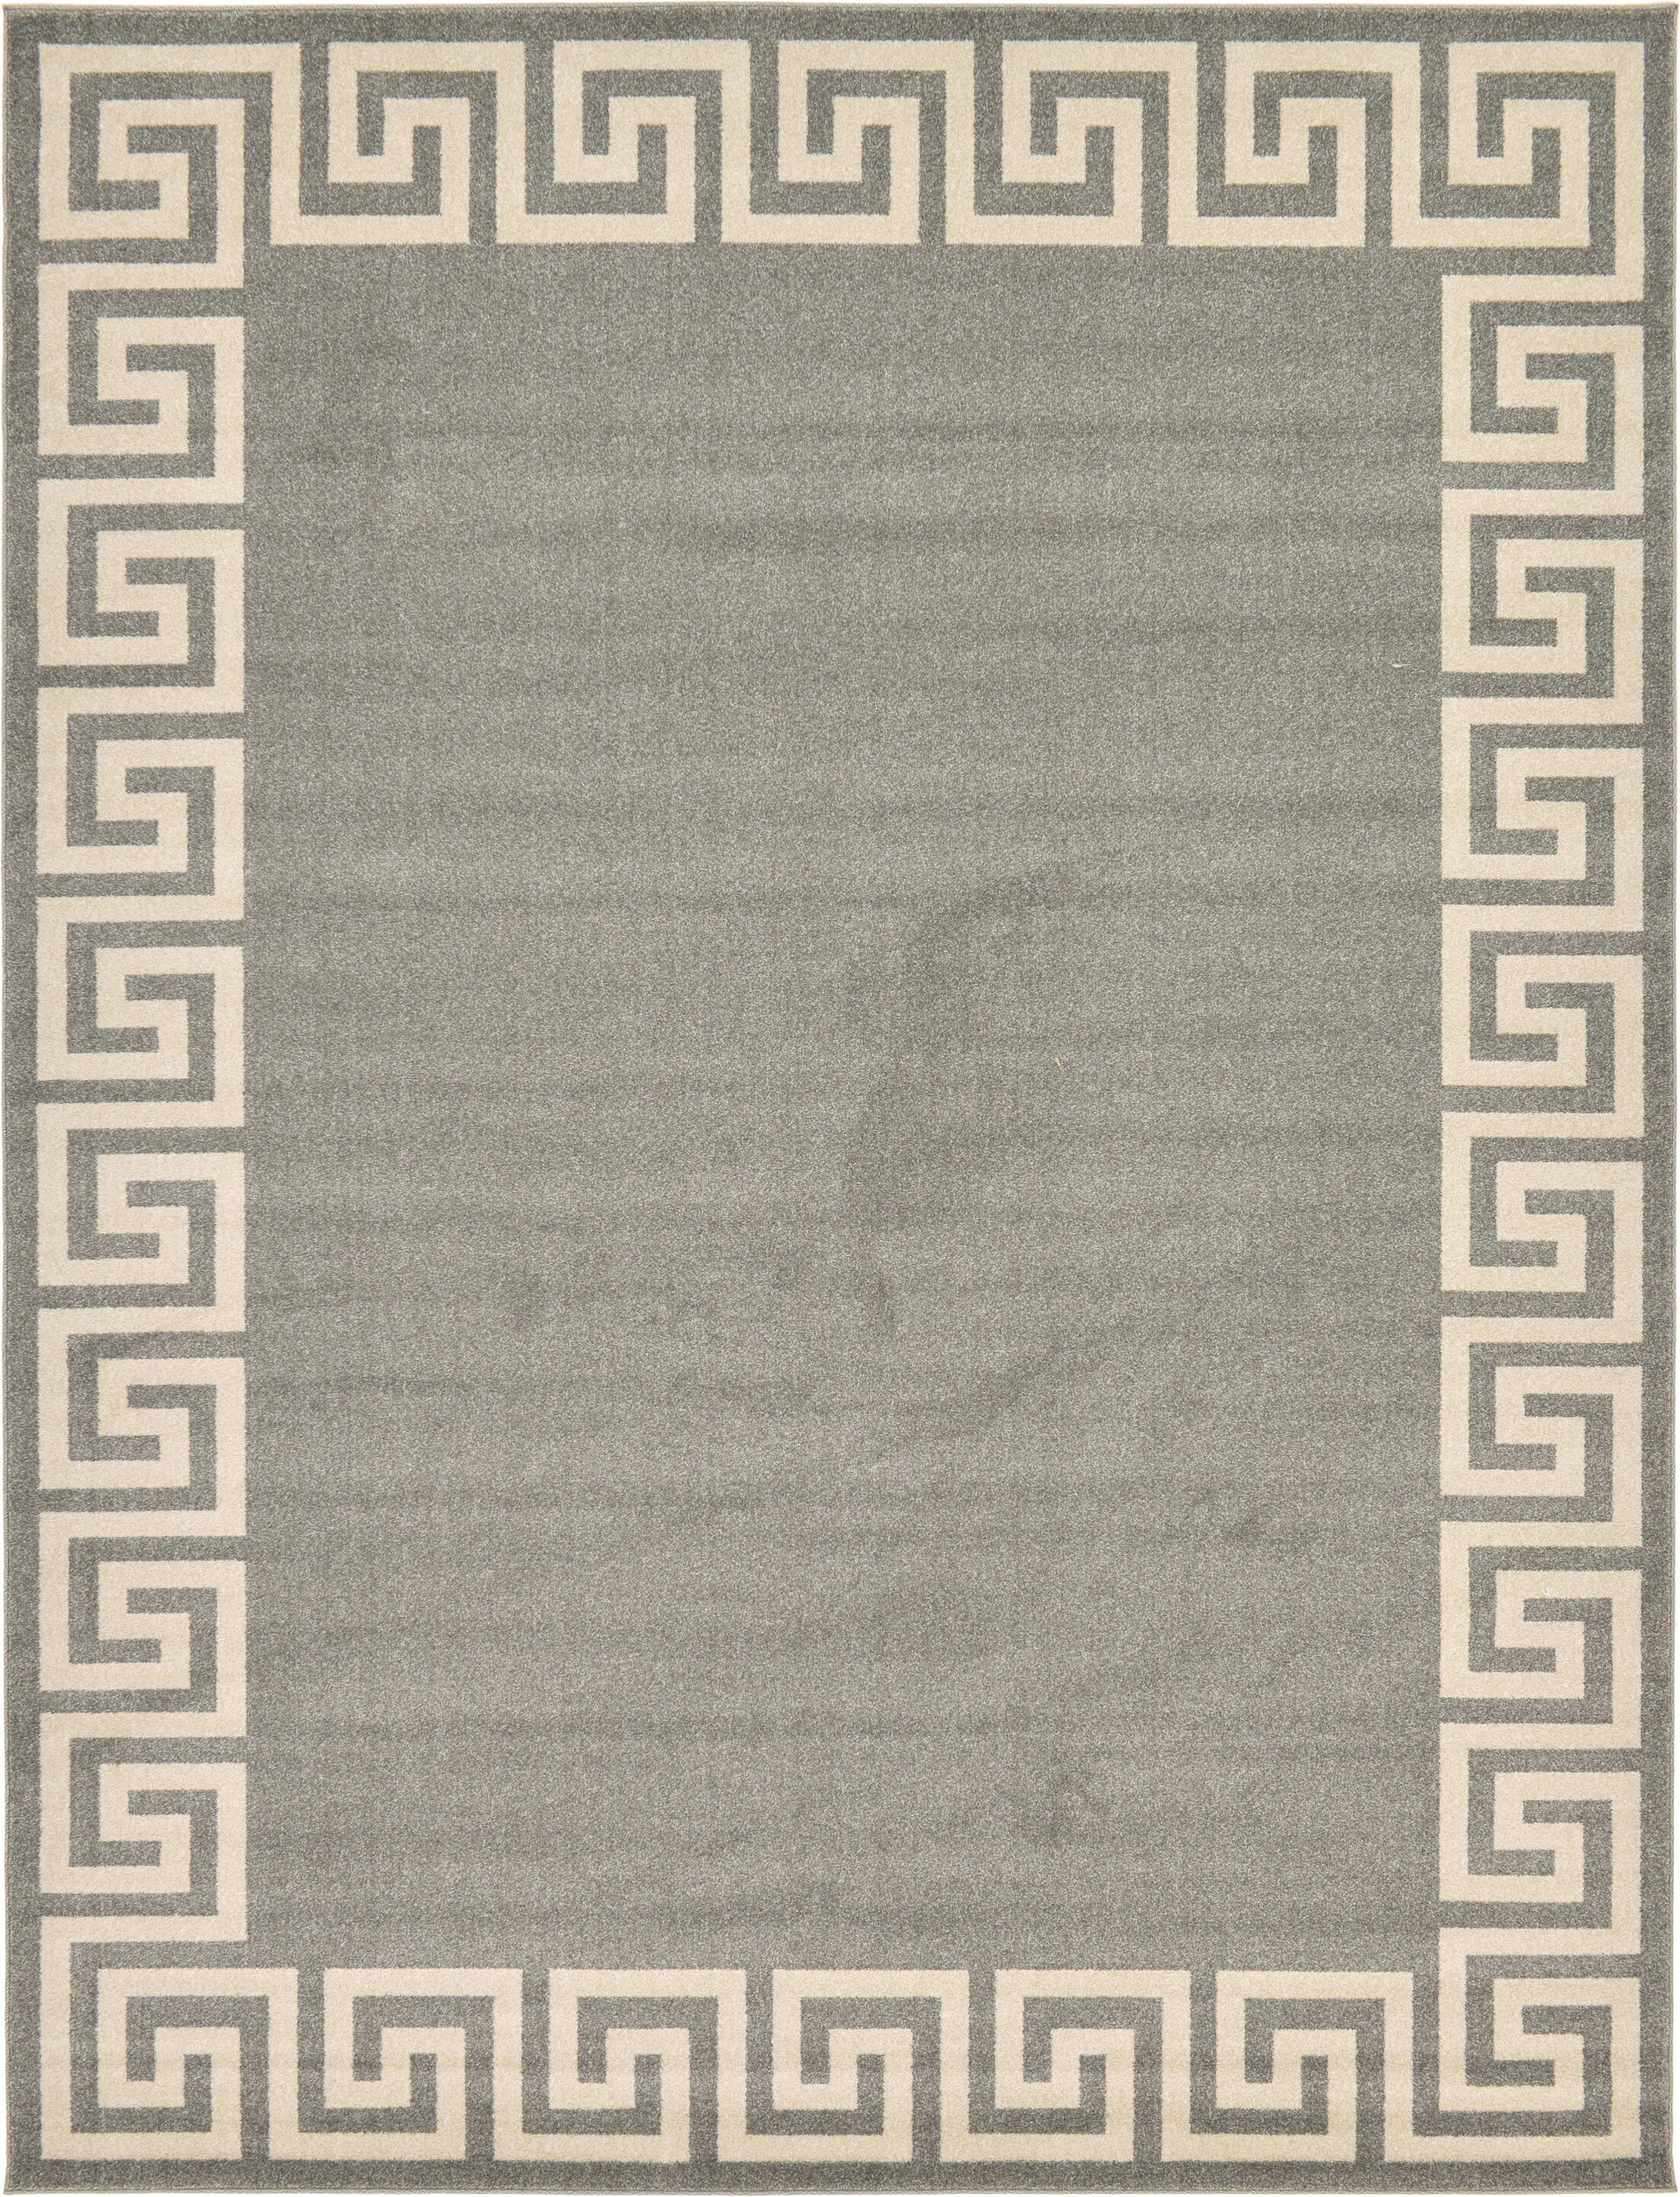 Cendrillon Gray Area Rug Rug Size: Rectangle 9' x 12'